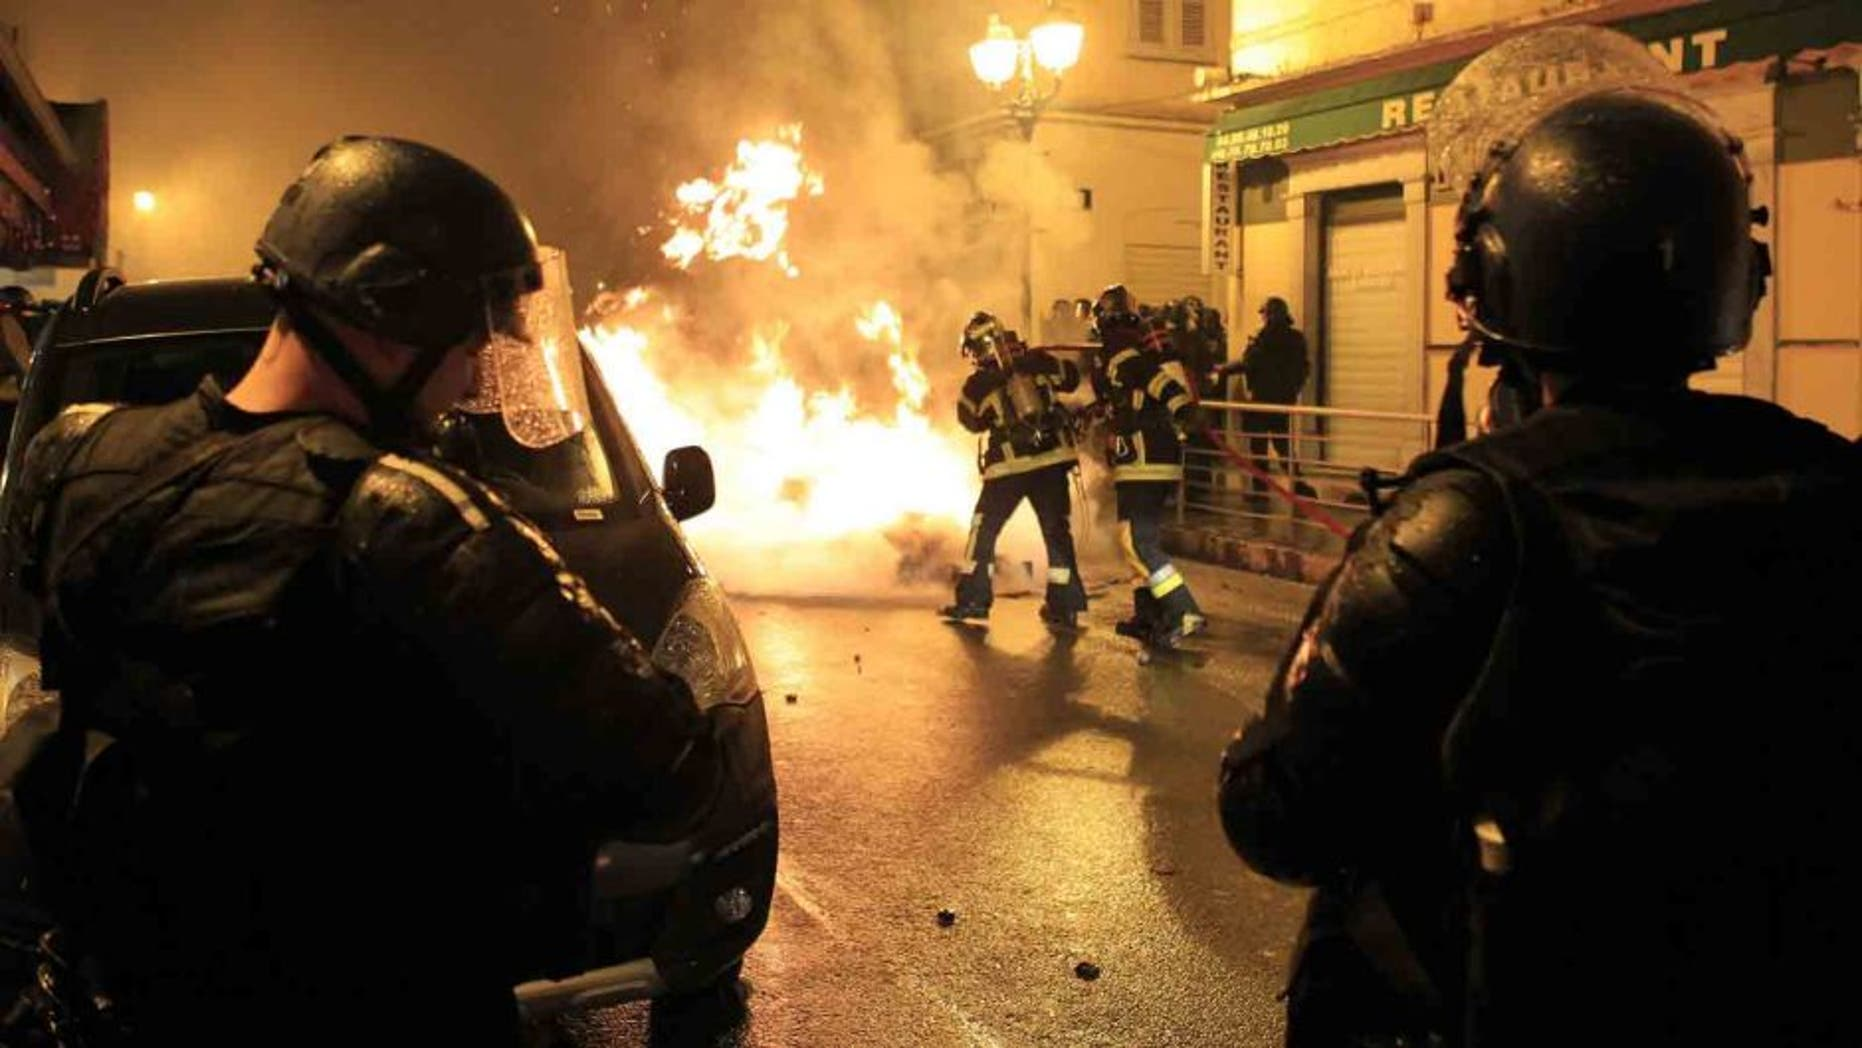 """Firefighters try to extinguish a fire during clashes between protesters and police in Corte on the French Mediterranean island of Corsica on February 16, 2016. French club Bastia have """"categorically refused"""" an order by the French Professional League (LFP) to advance the kick-off time of their Ligue 1 game against Nantes on February 20 amid security fears in Corsica. The decision to bring the game forward from 20:00 local time (1900GMT) to 14:00 (1300GMT) was requested by police on the French Mediterranean island after violence sparked by Corsican fans during the league game at Reims on February 13. Fans threw fireworks at police before and after the match in the Champagne region with the violence spilling into the town when a 22-year-old Corsican suffered a serious eye injury while being pursued by police. Fresh clashes erupted on Tuesday when around 50 masked individuals interrupted peaceful demonstrations by throwing Molotov cocktails at police forces, who in turn responded with tear gas to quell the trouble. / AFP / Pascal POCHARD-CASABIANCA (Photo credit should read PASCAL POCHARD-CASABIANCA/AFP/Getty Images)"""